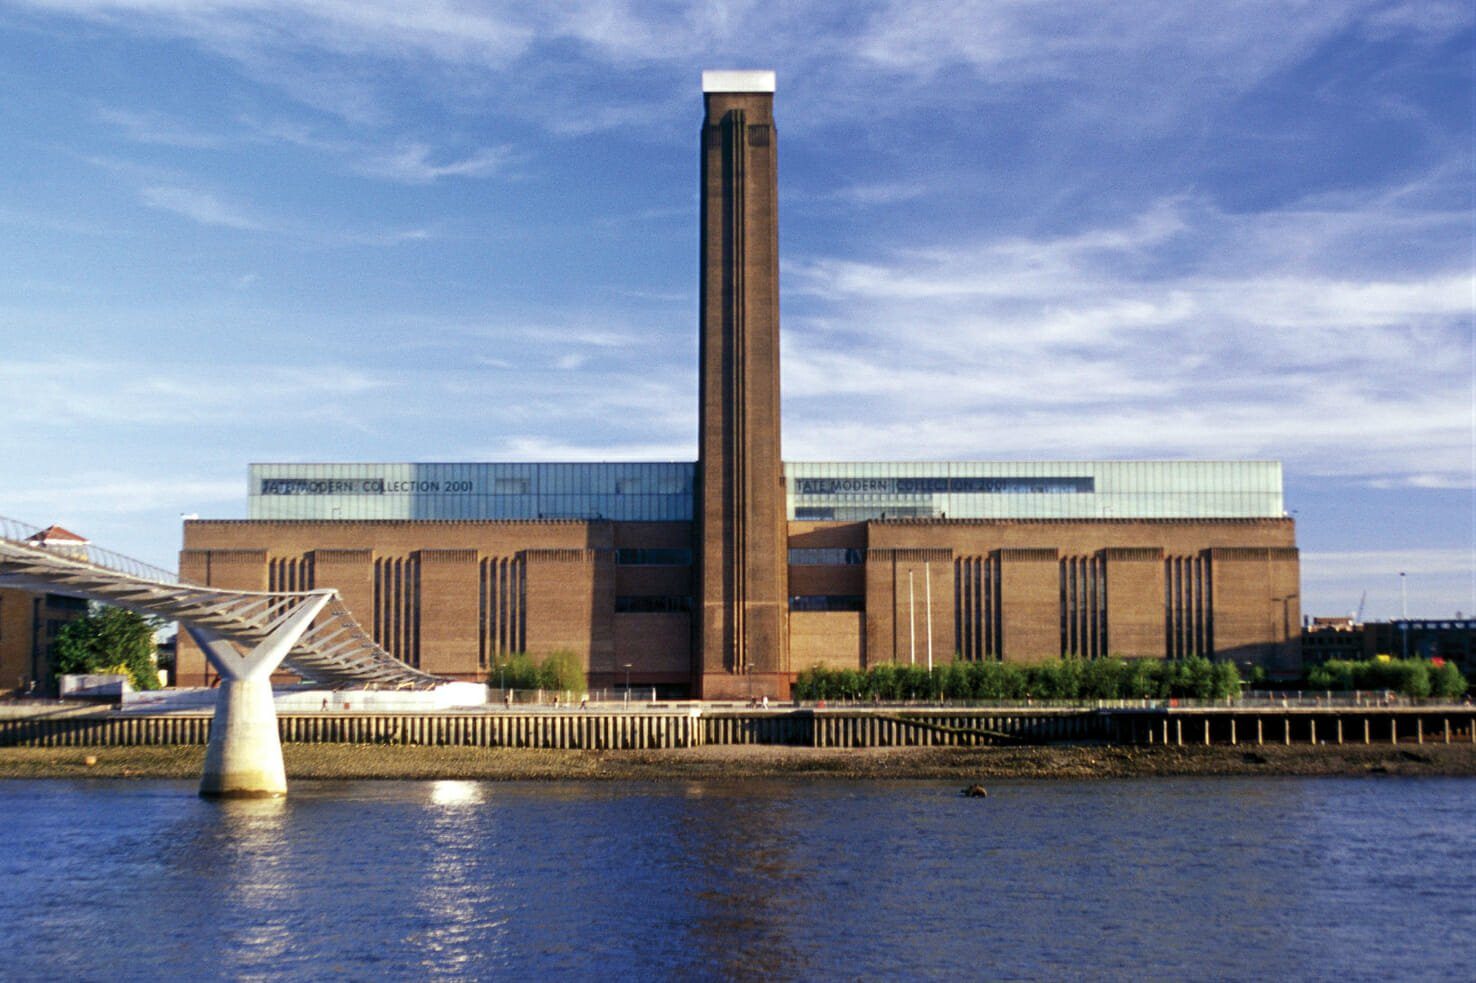 Tate Modern London museums